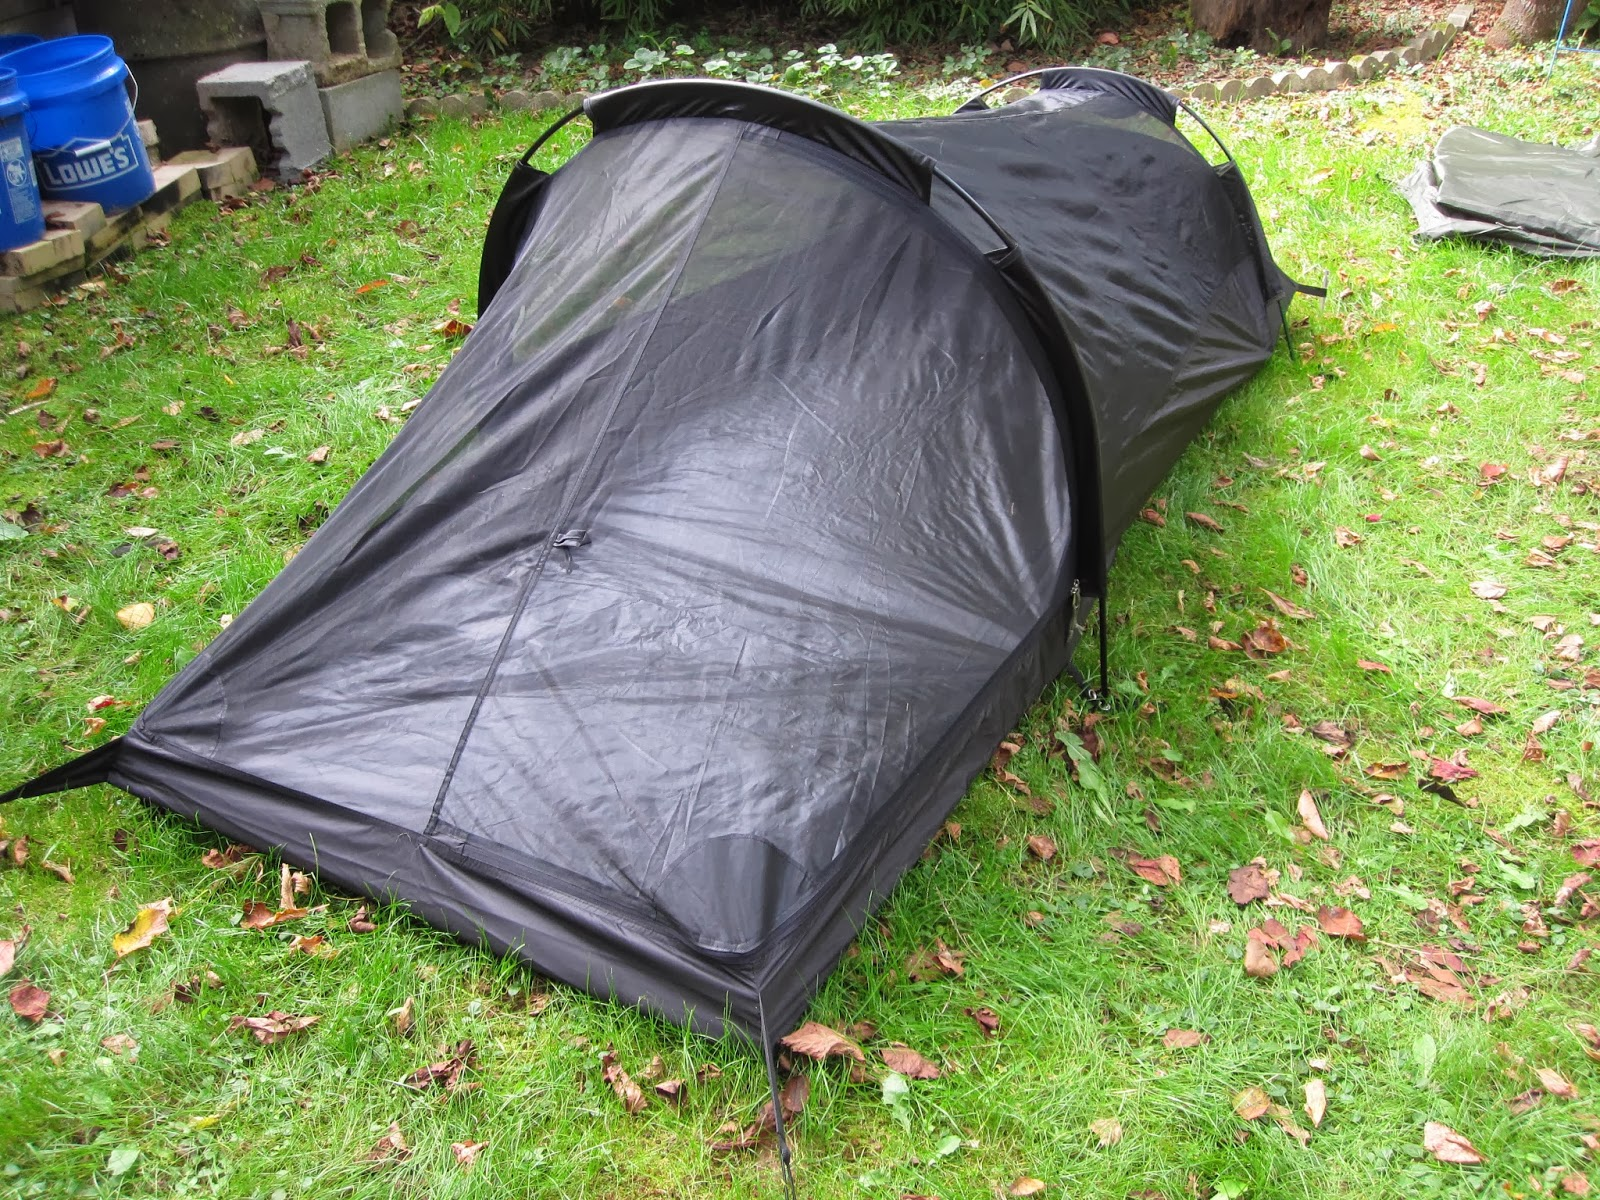 The Outdoor Gear Review Snugpak Ionosphere Bivy / Tent - Review - The Outdoor Gear Review & The Outdoor Gear Review: Snugpak Ionosphere Bivy / Tent - Review ...